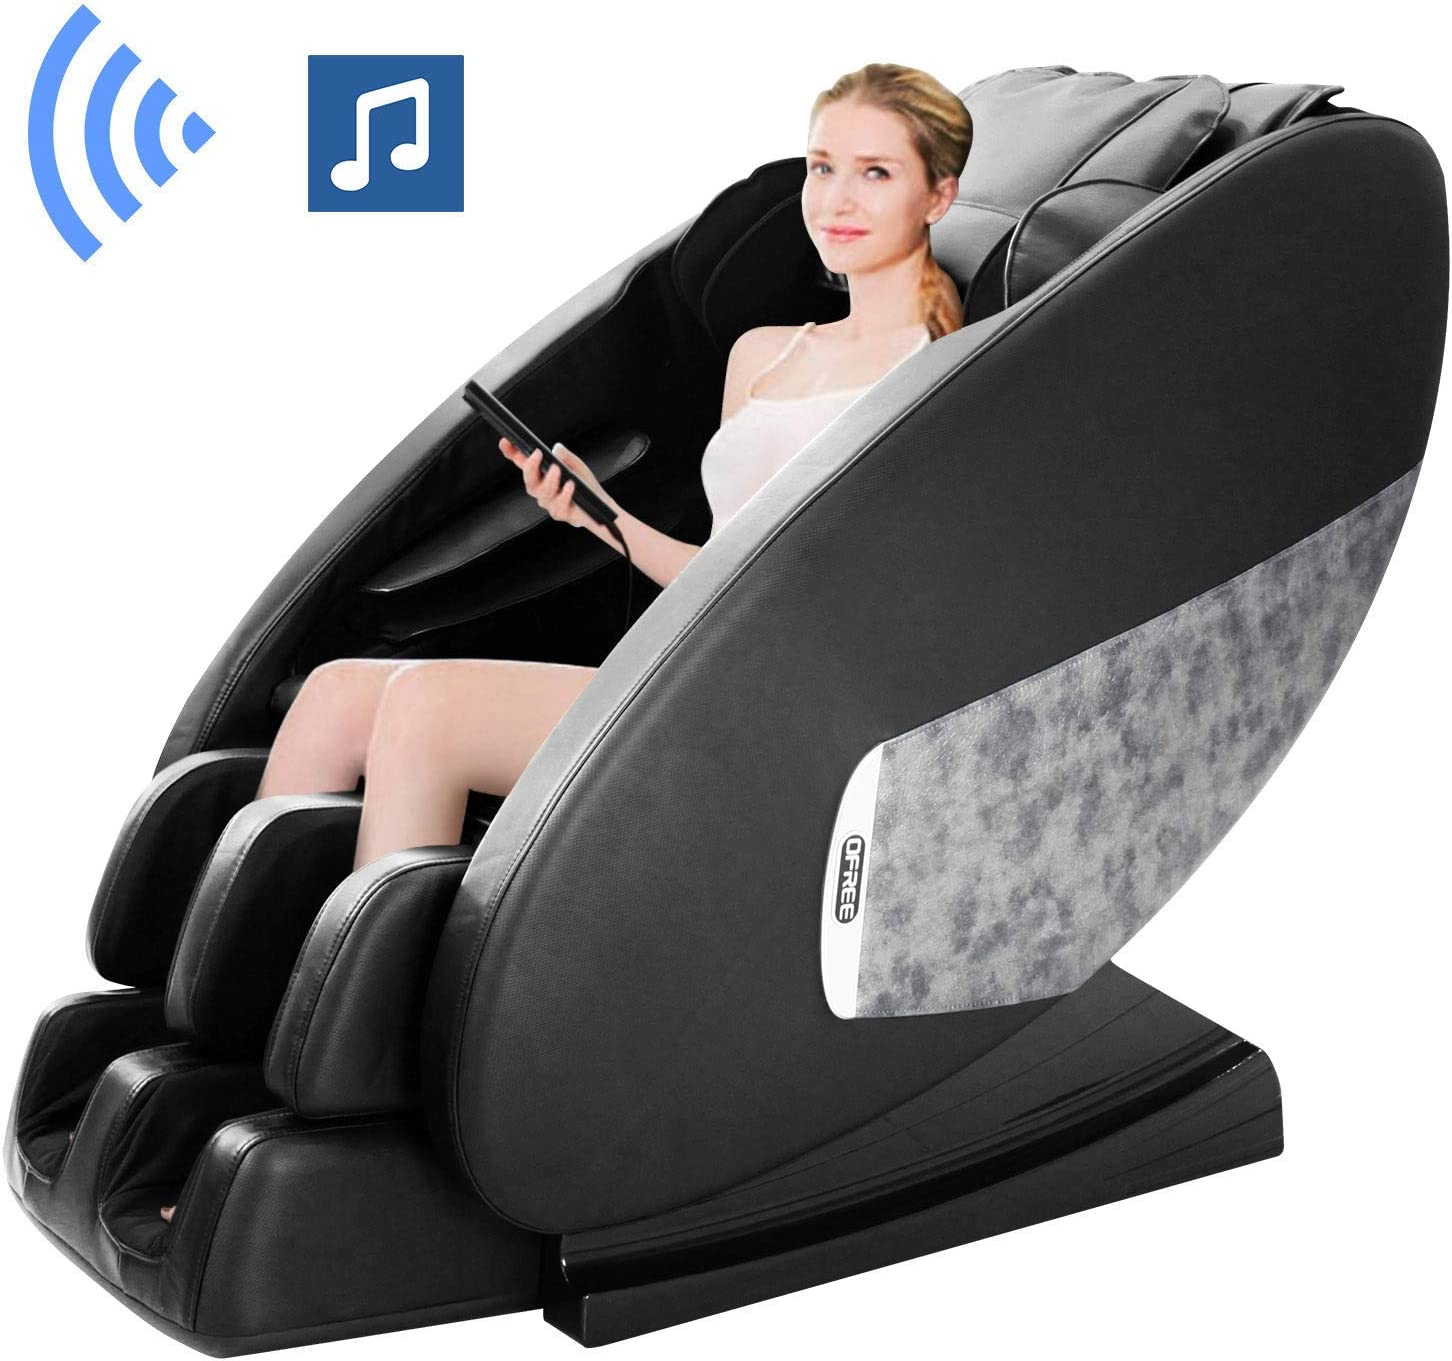 OOTORI Zero Gravity Massage Chair,Full Body Shiatsu Electric Massage Chairs with Vibration Heating Foot Roller